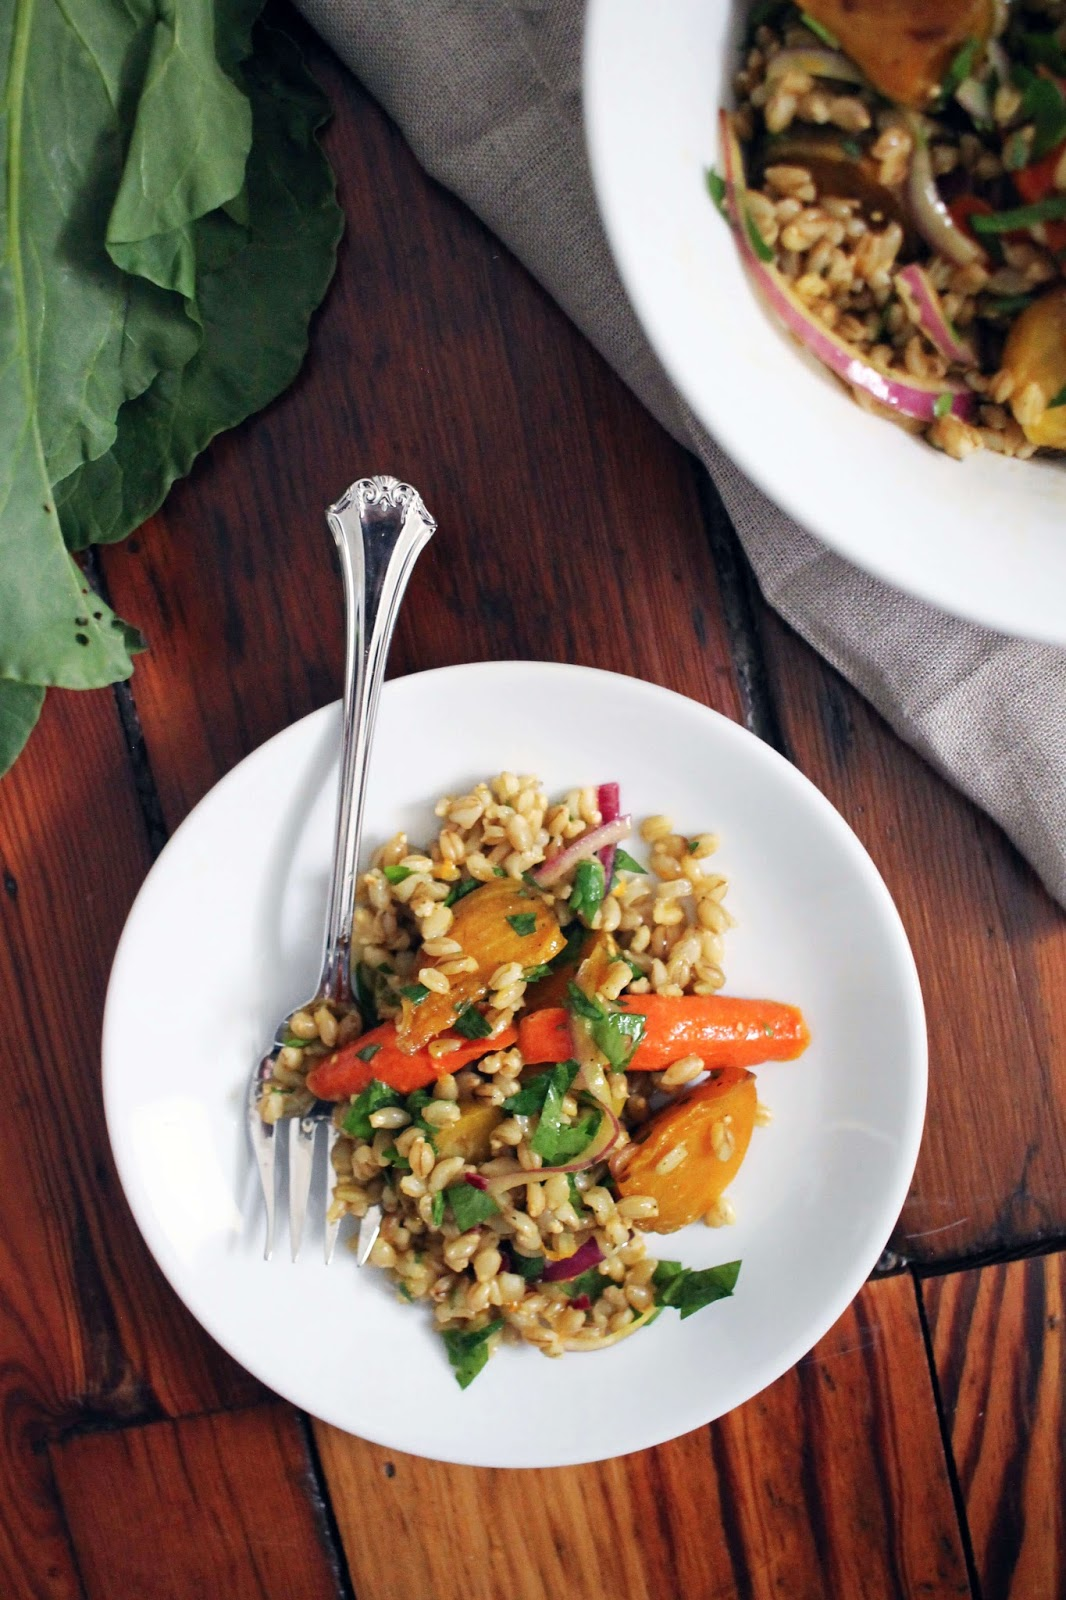 Roasted Beet & Barley Salad with Orange